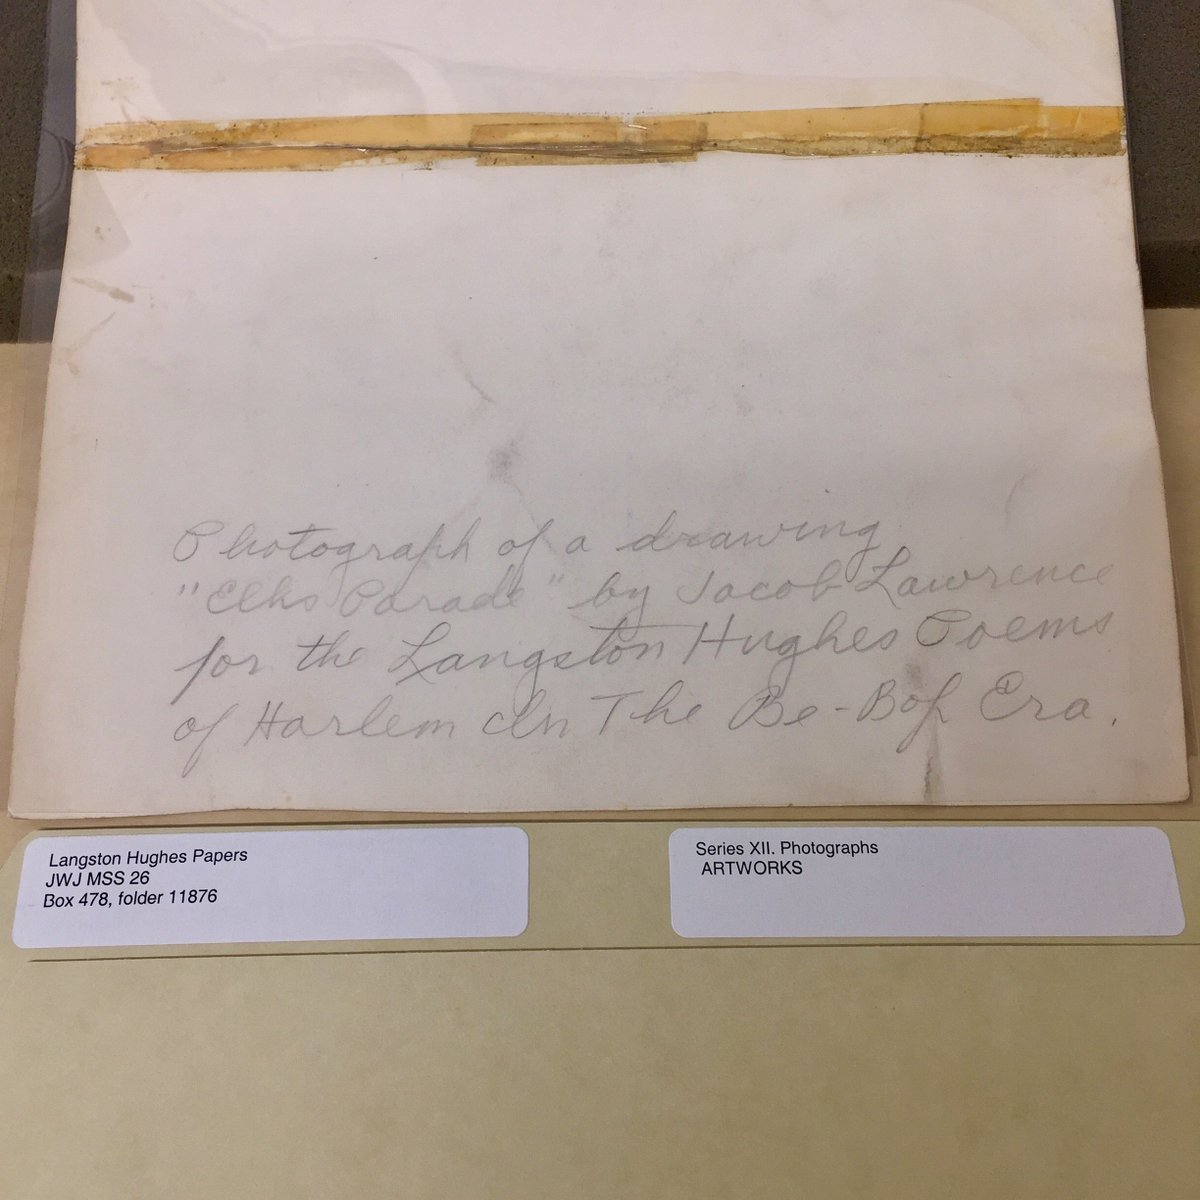 synthesis paper for langston hughes